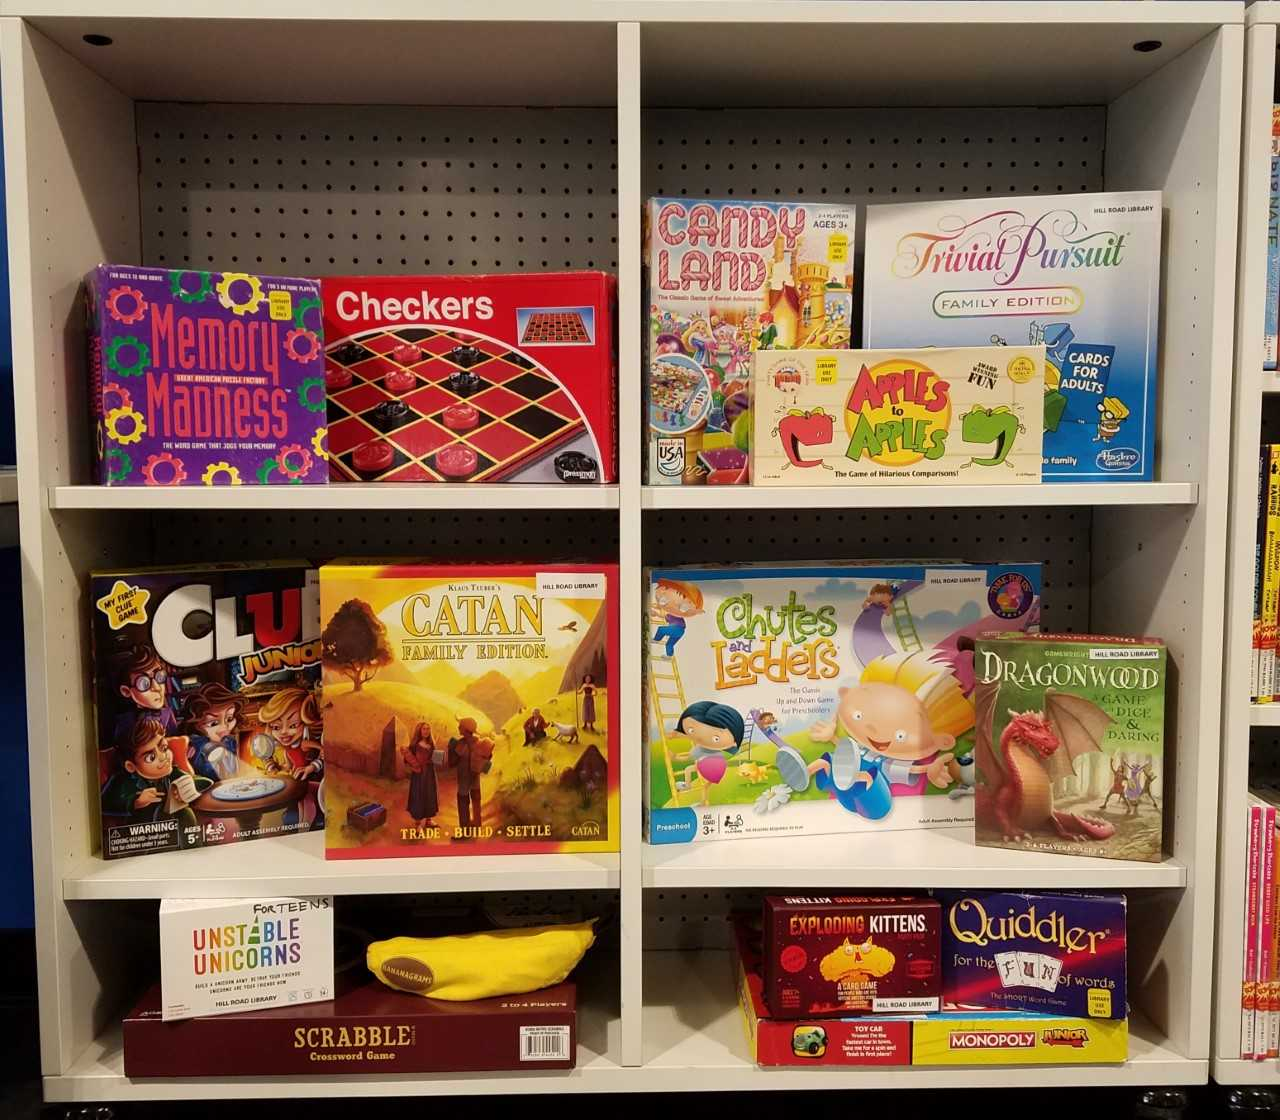 photos shows all of the various board games available at the library